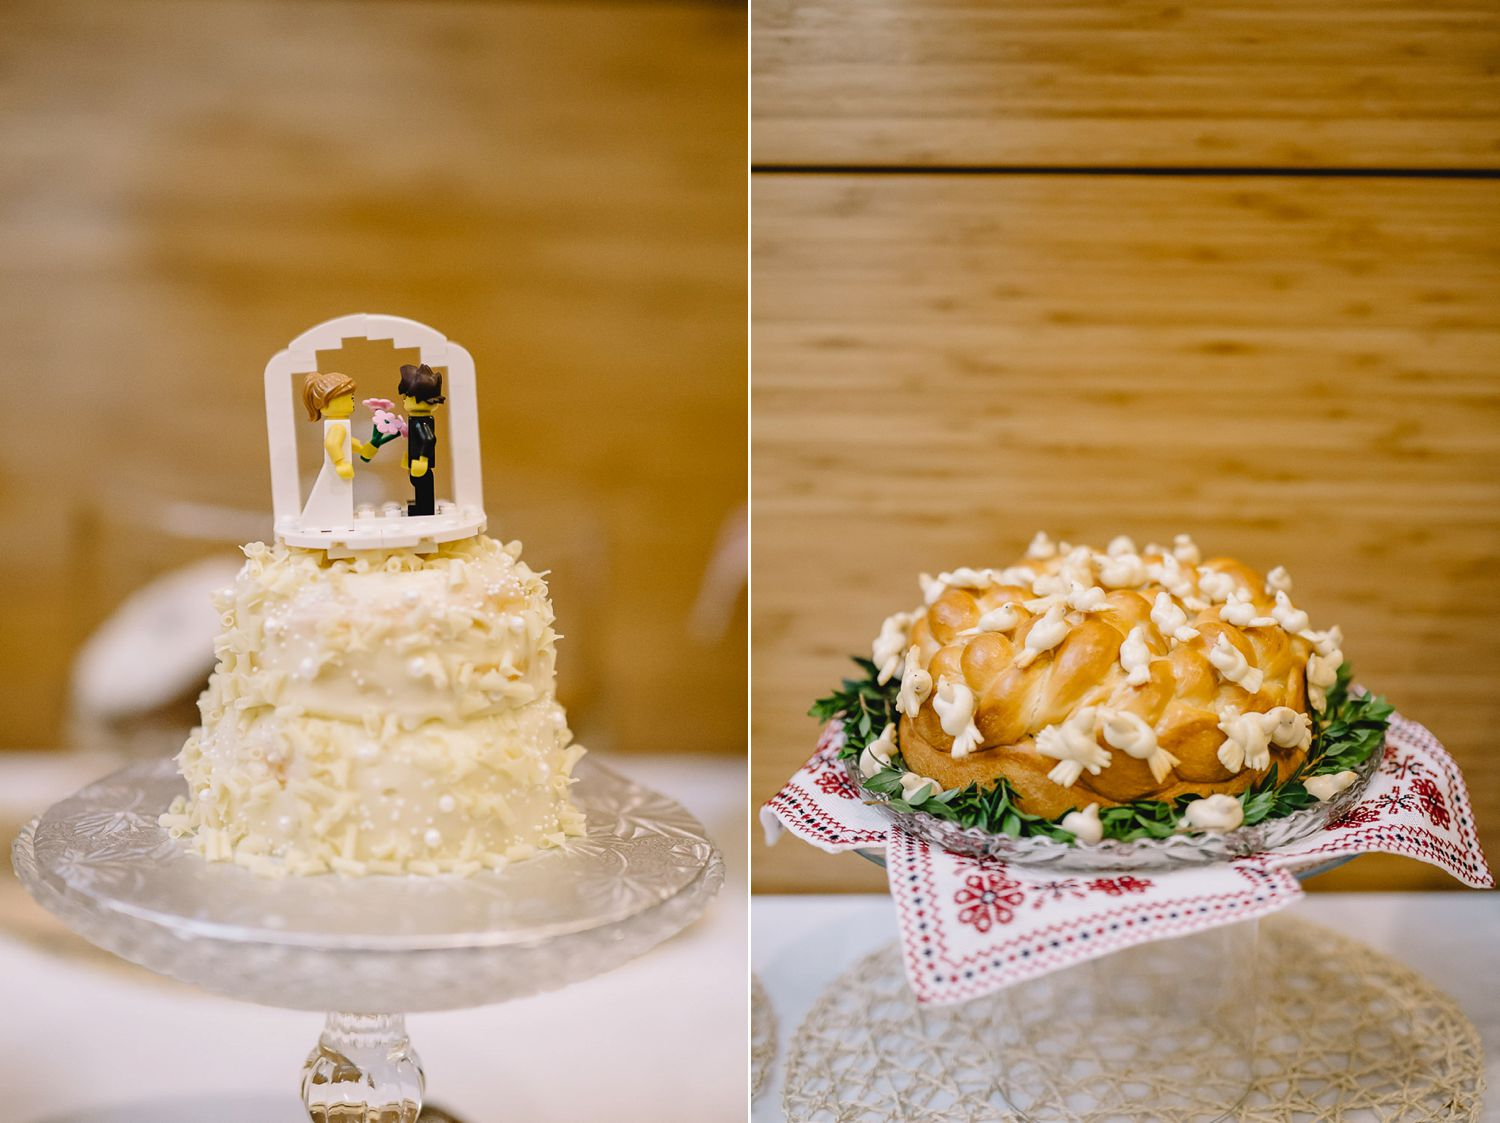 Jelly Modern Donut wedding cake